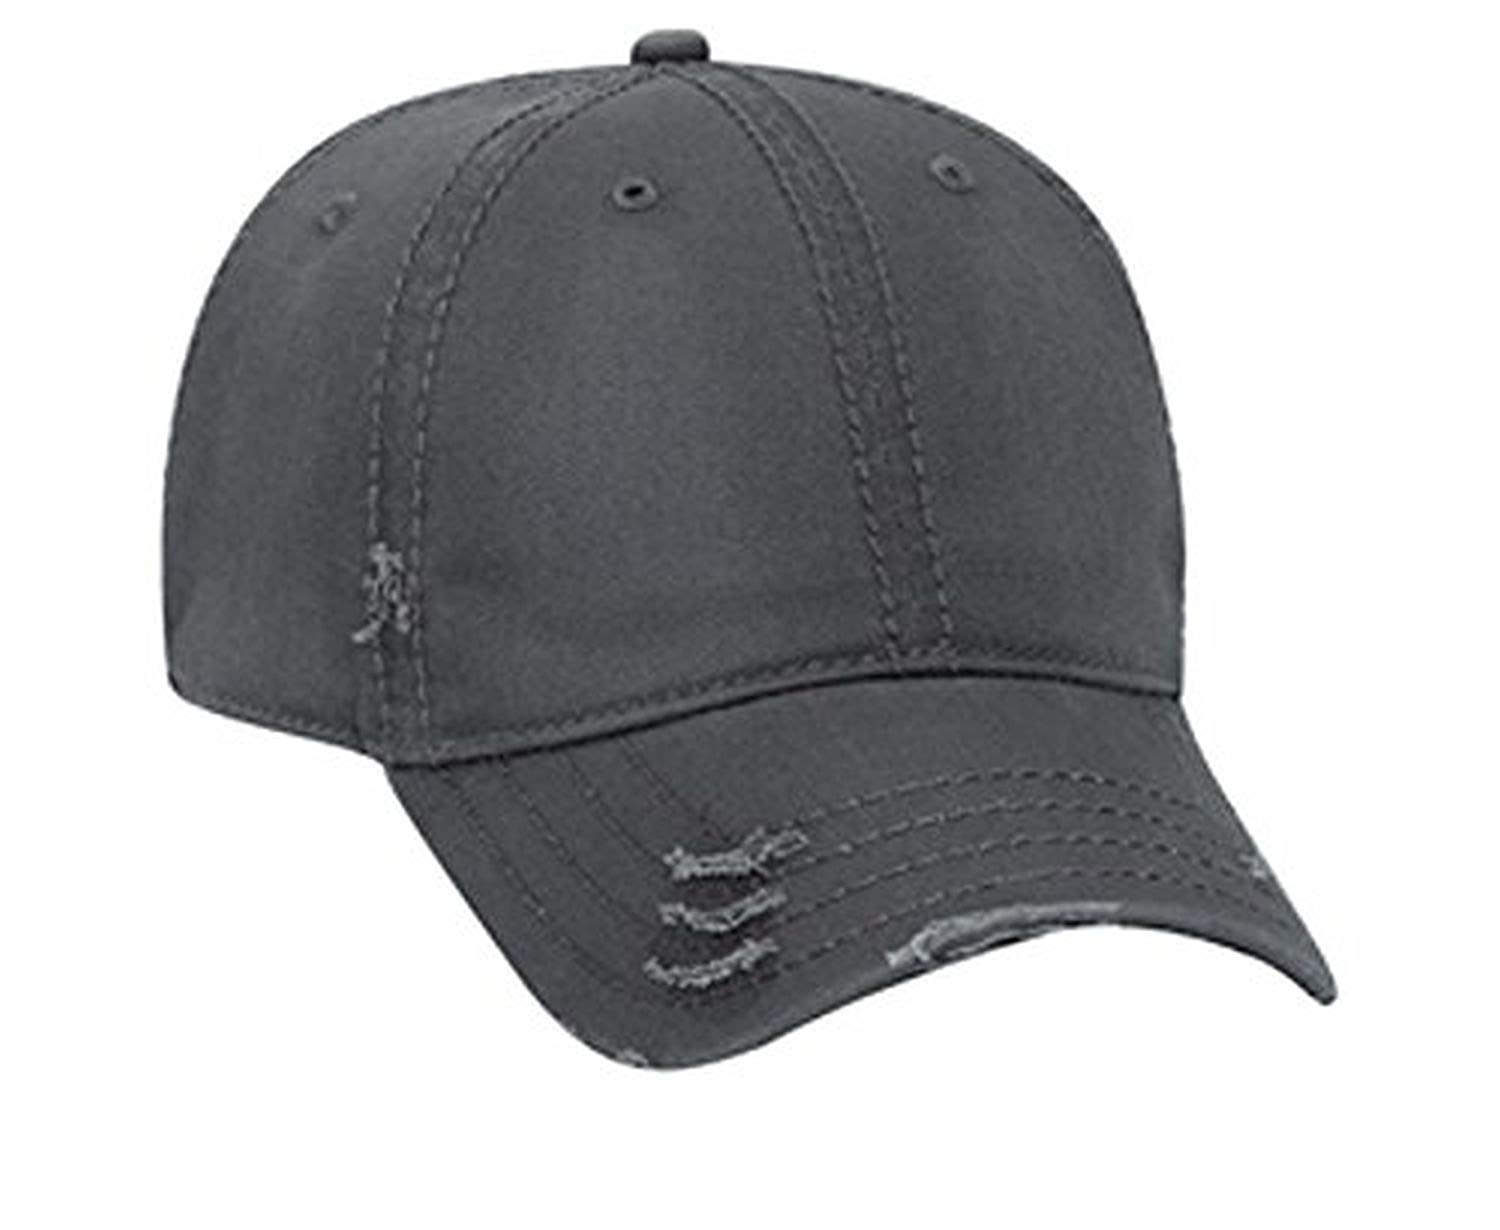 Hats & Caps Shop Distressed Superior Garment Washed Cn Twill Low Profile Pro Style Caps - By TheTargetBuys